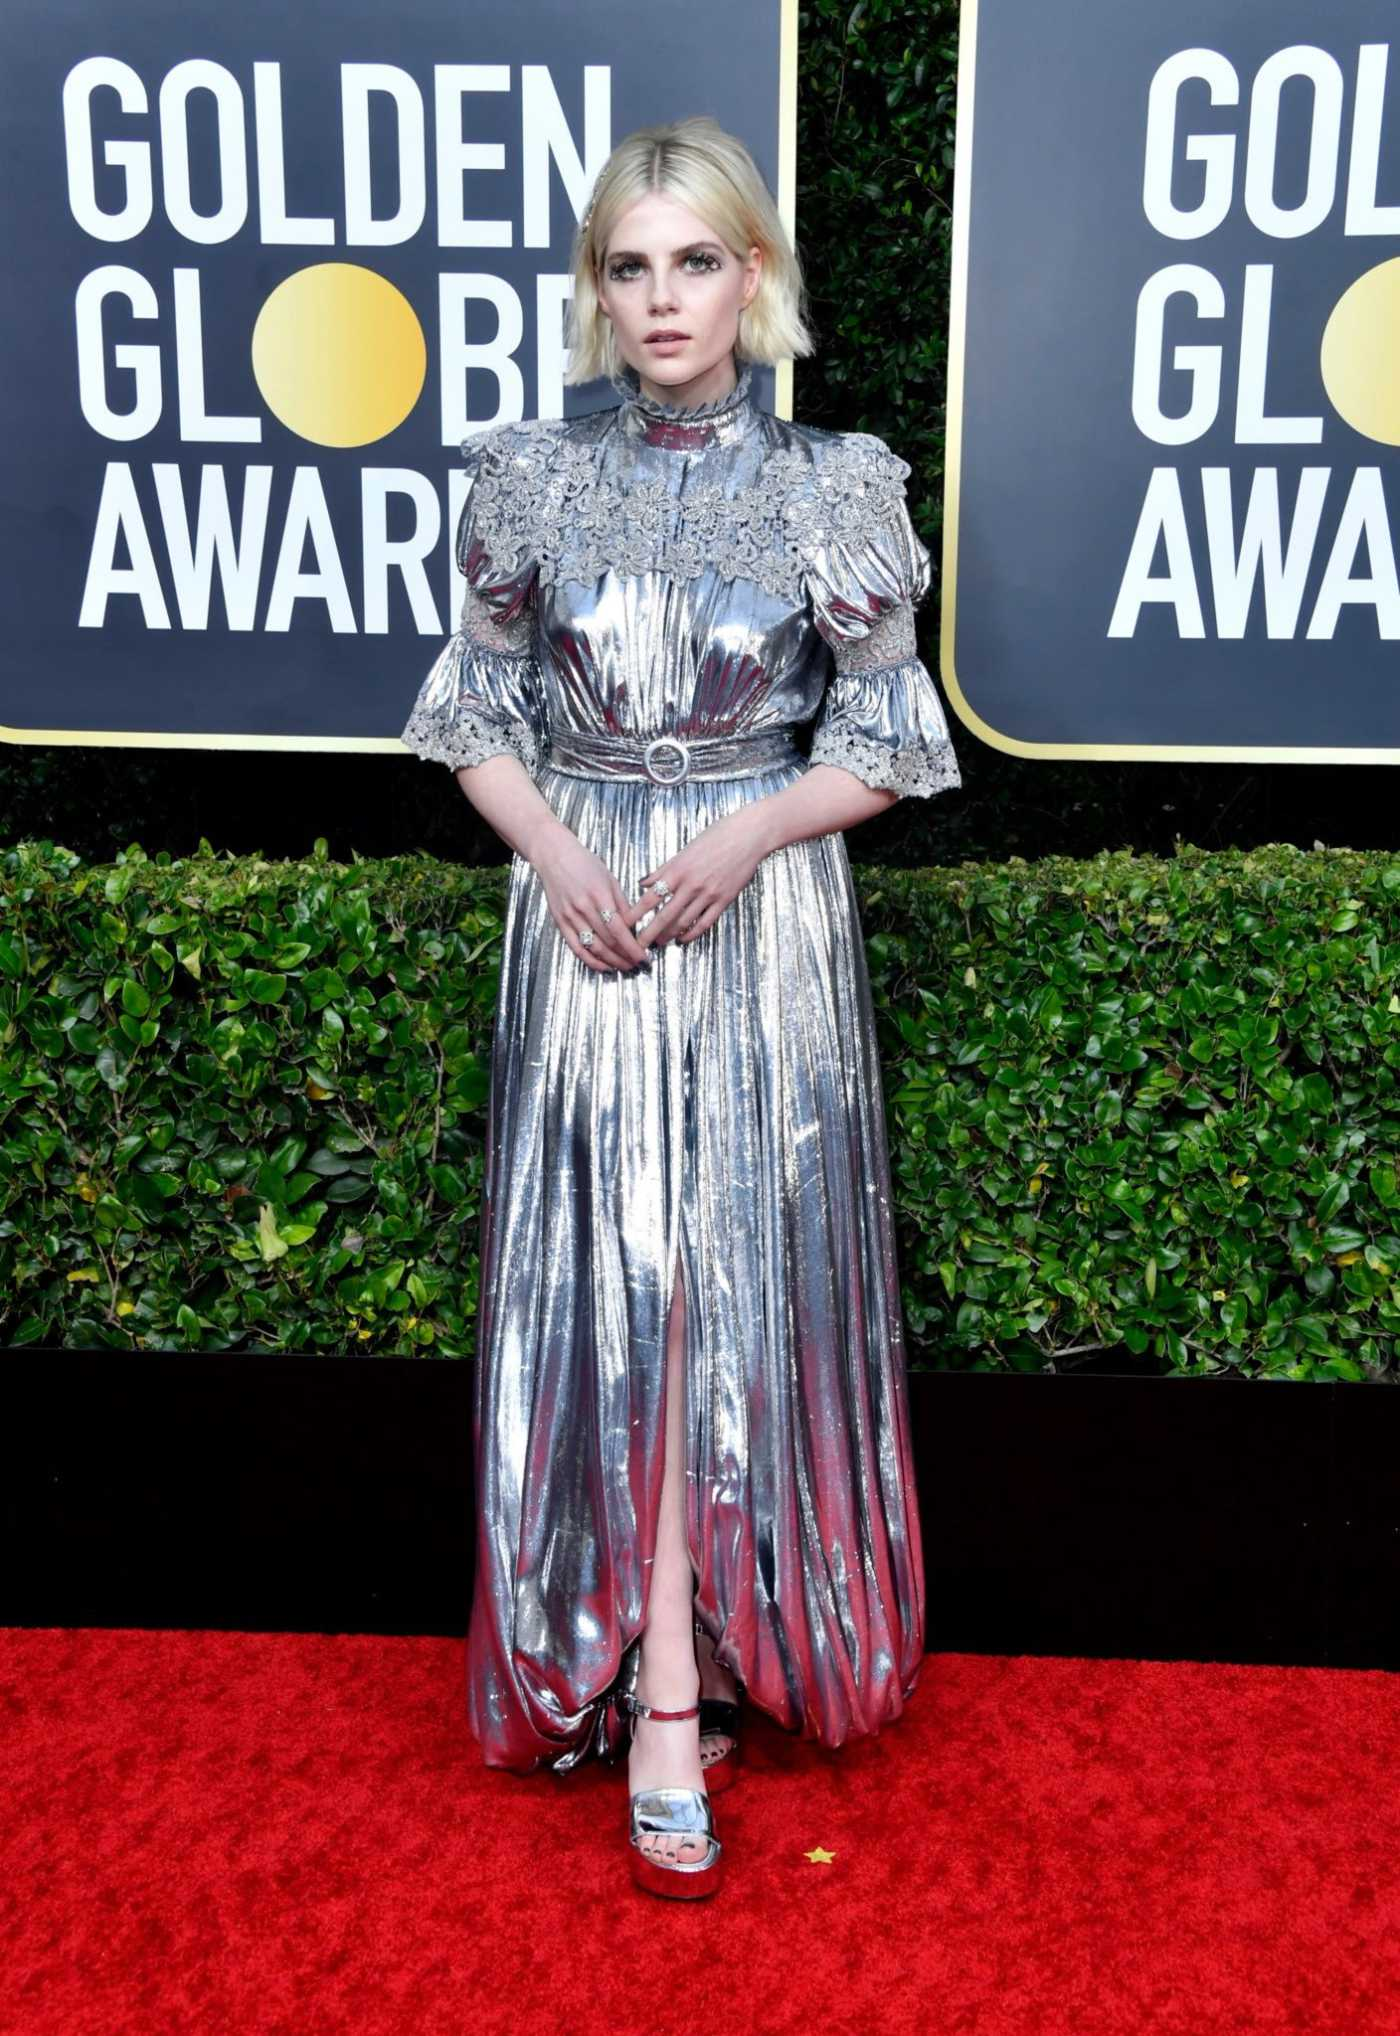 Lucy Boynton Attends the 77th Annual Golden Globe Awards at the Beverly Hilton Hotel in Beverly Hills 01/05/2020